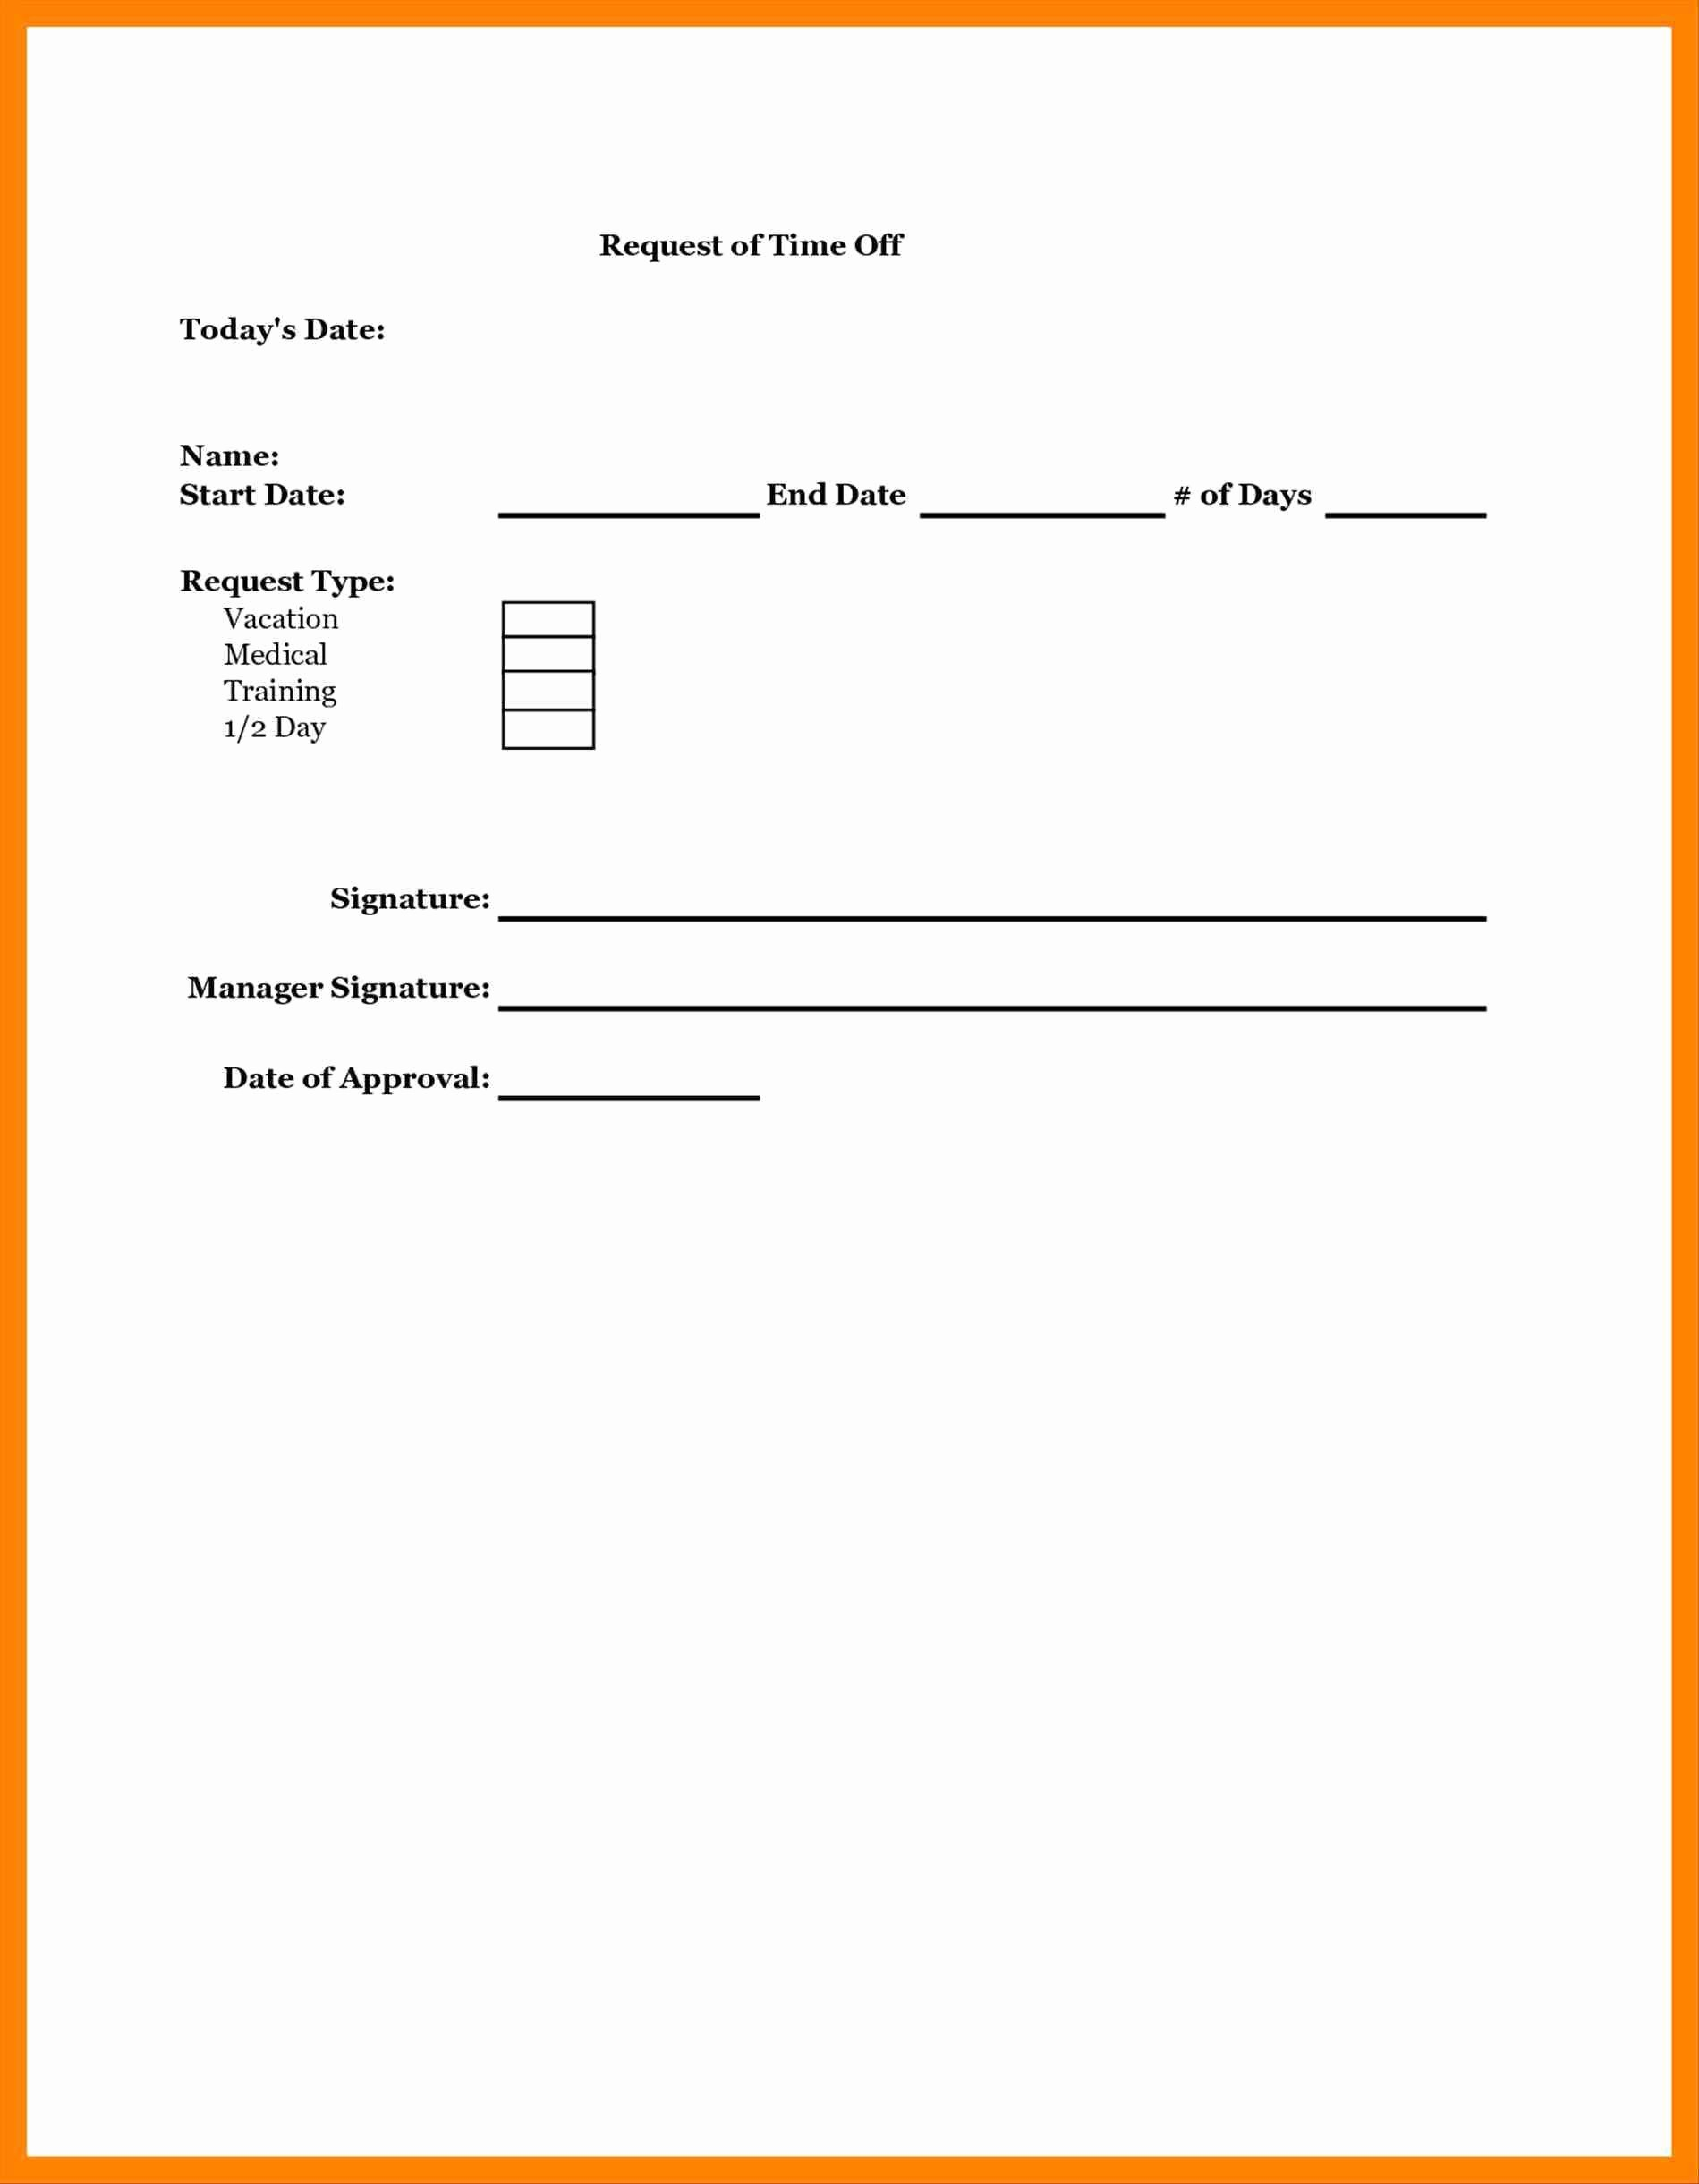 Travel Advance Request form Template Unique Travel Advance Request form Template Sample Travel